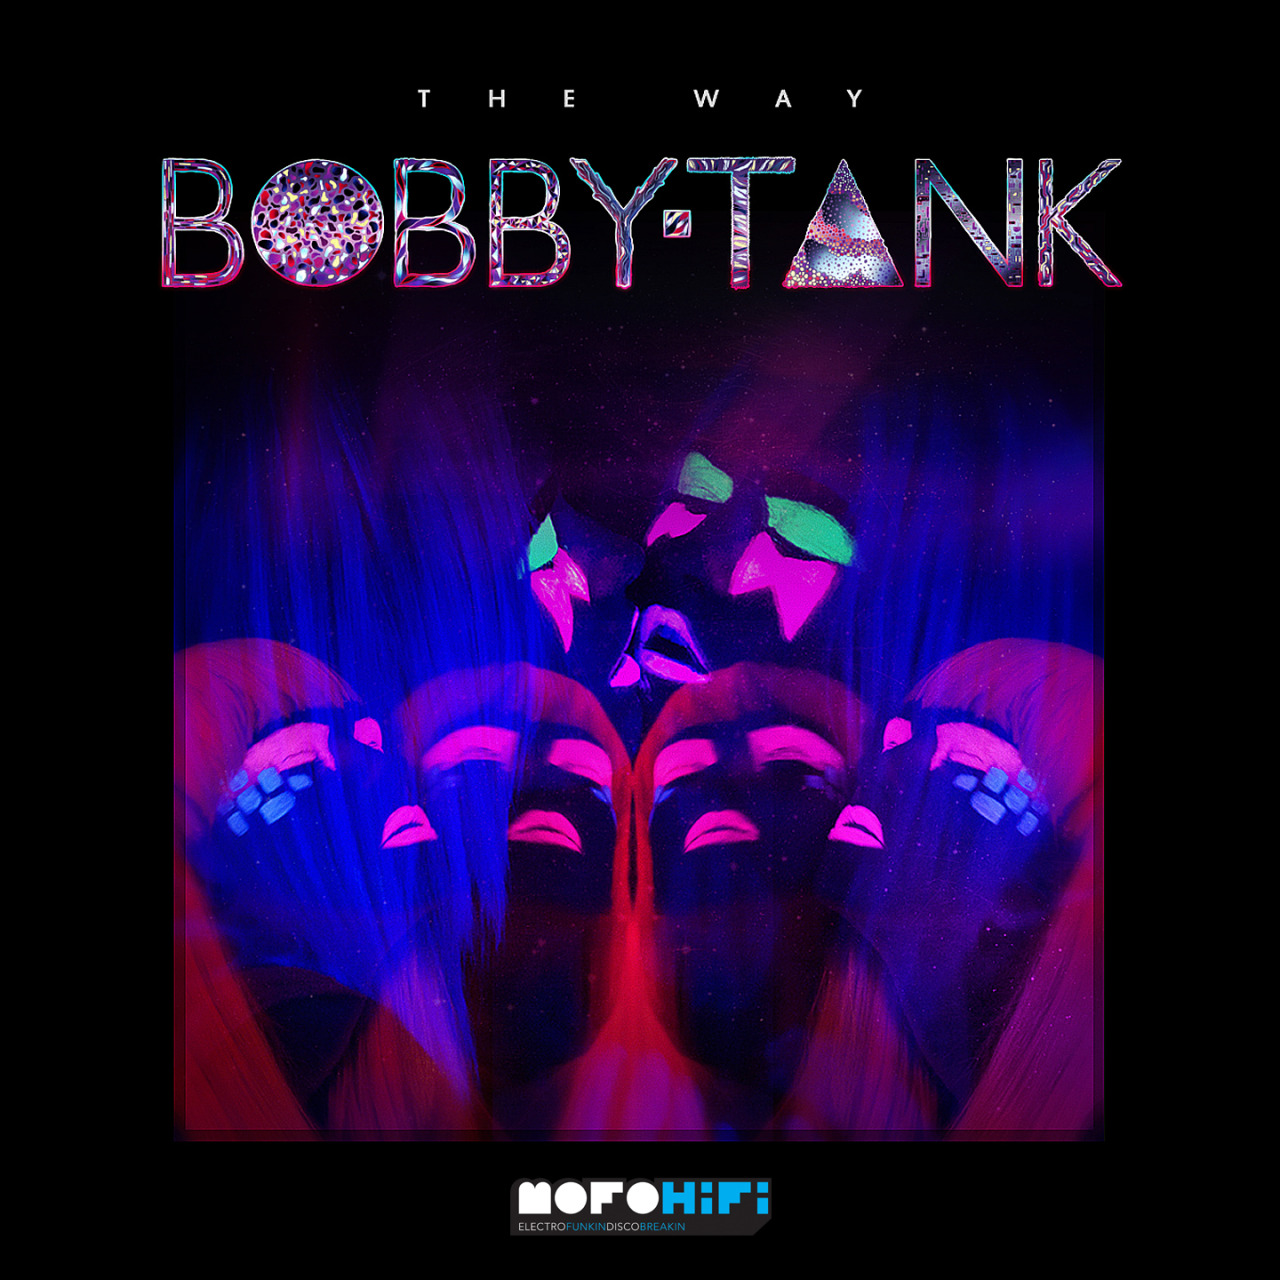 "REVIEW ➮➫➬➭ THE WAY EPSTARRING ➮➫➬➭ Bobby TankThe london producer Bobby Tank releases via MofoHifi Records the follow up of his 2012 debut ""Afterburn ep"". 6 tracks of classy maximalism that merges the best bass, trap and glitchy beats. The atmospheres in ""The Way"" are relaxed in contrast with the frenetic textures of the vocal samples, Rustie a-like.The scottish LuckyMe influences are also strong in ""Waterphone shadows"", delicious liquid bass track. The big massive synths always present in the record are warm and 80ish and reminds me of the mood of ""Reaching Out"" the 2011 NERO 's single: this is clear in the song ""Glass Moon"" that you can download for free via XLR8R .Bobby Tank is an emotional version of our crunk favs Sinjin Hawke, Cosmic Revenge , Rustie , Hudson Mohawke. You'll love this.8.0 ☺ / 10.0 ☺"